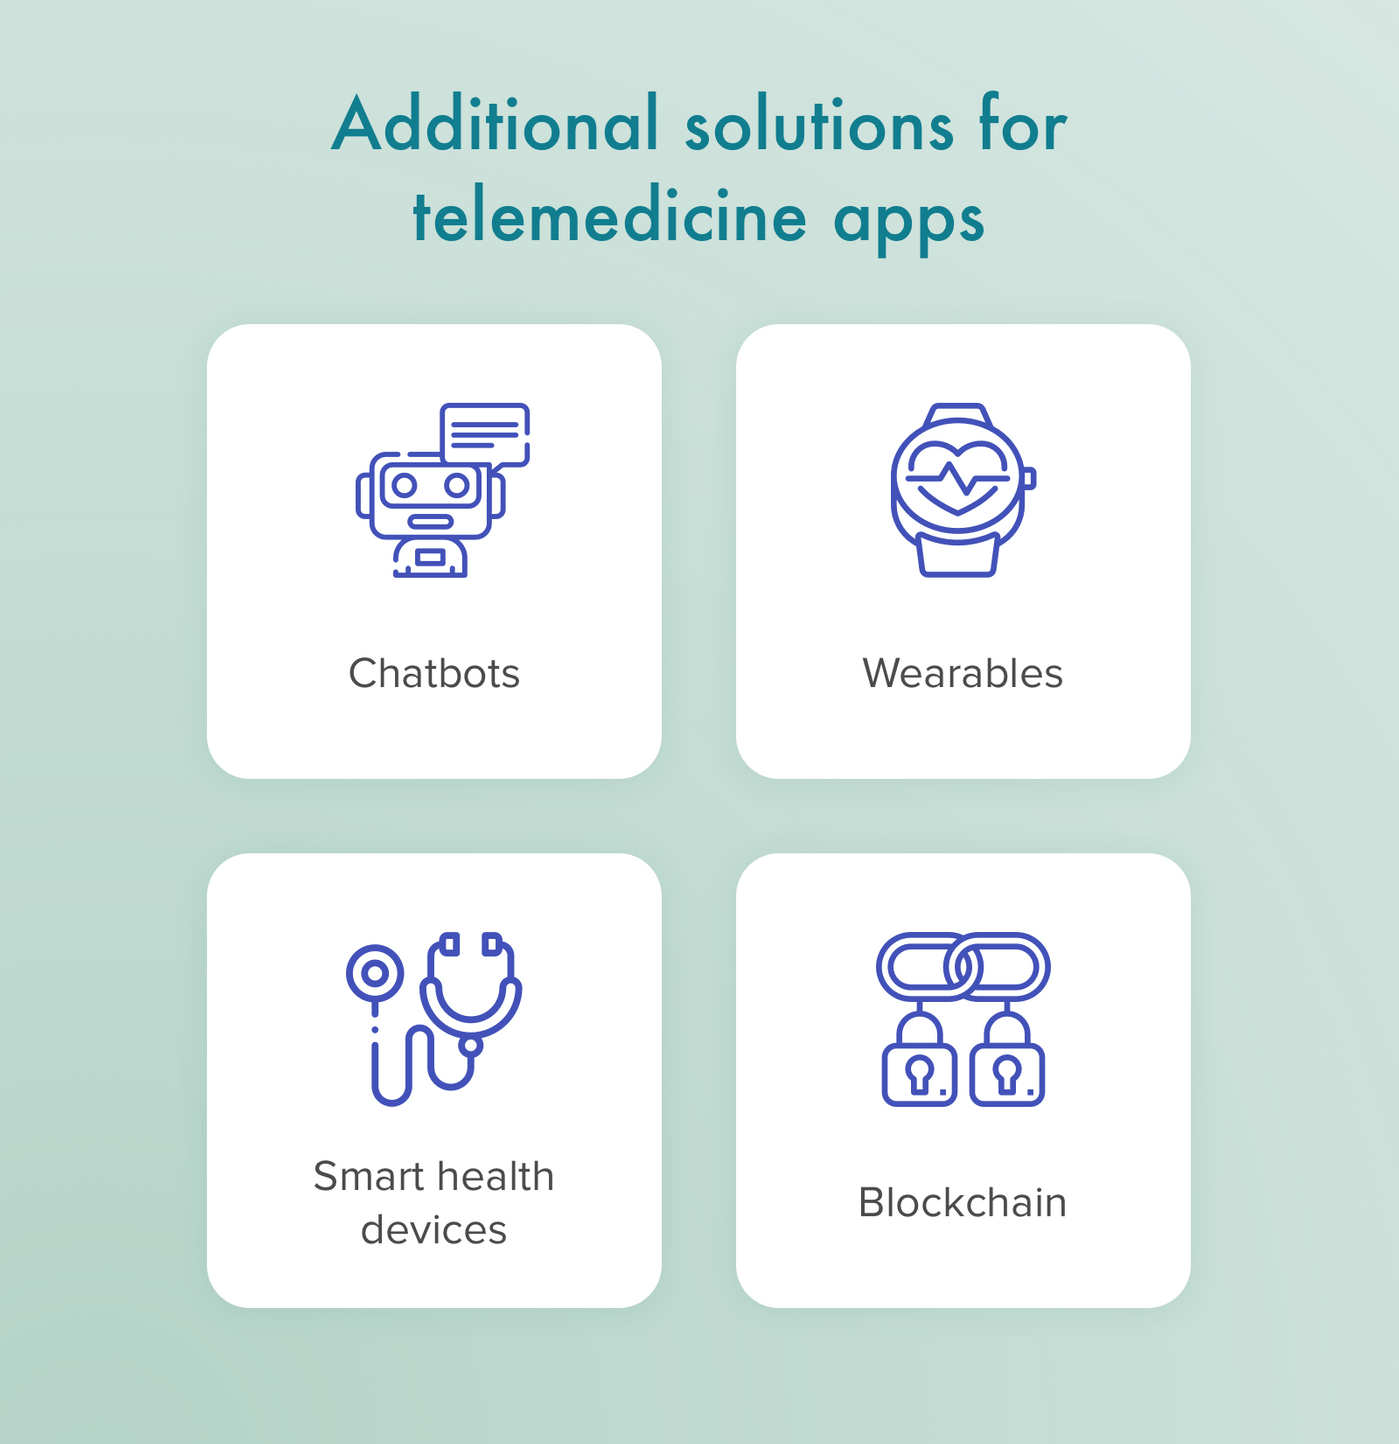 Additional solutions for telemedicine apps